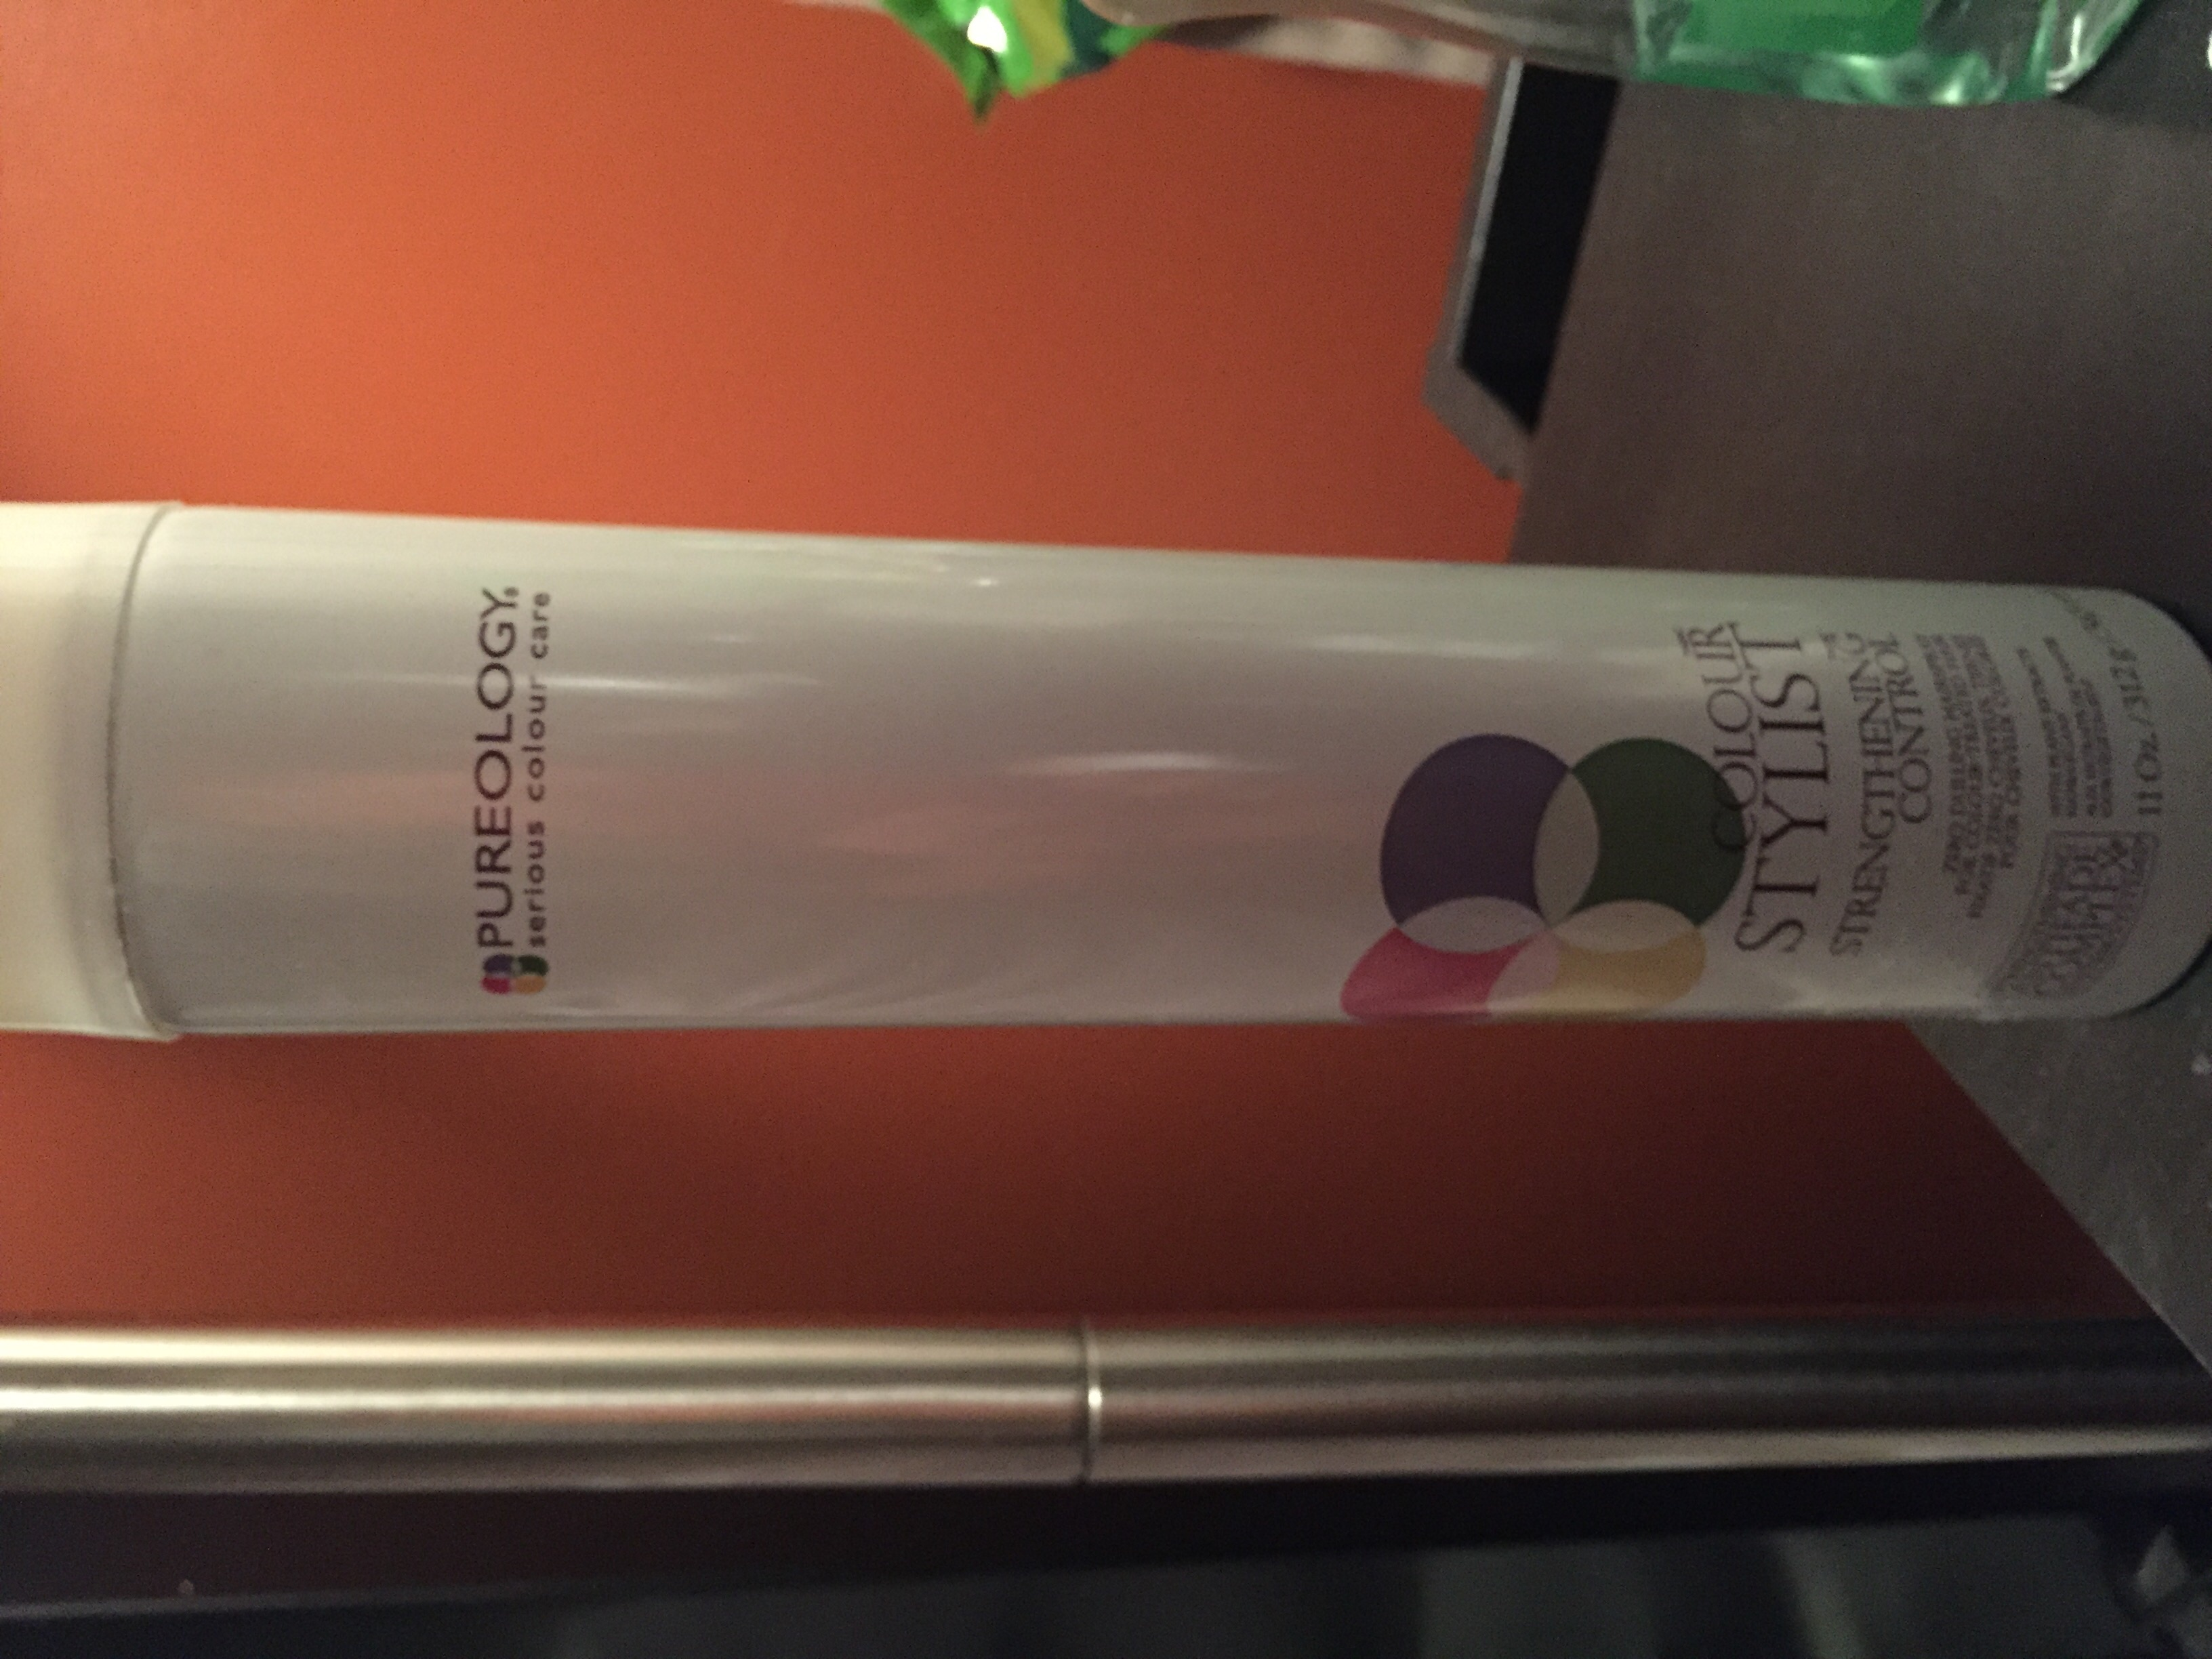 Pureology Colour Stylist™ Strengthening Control Hairspray uploaded by Zorimel V.